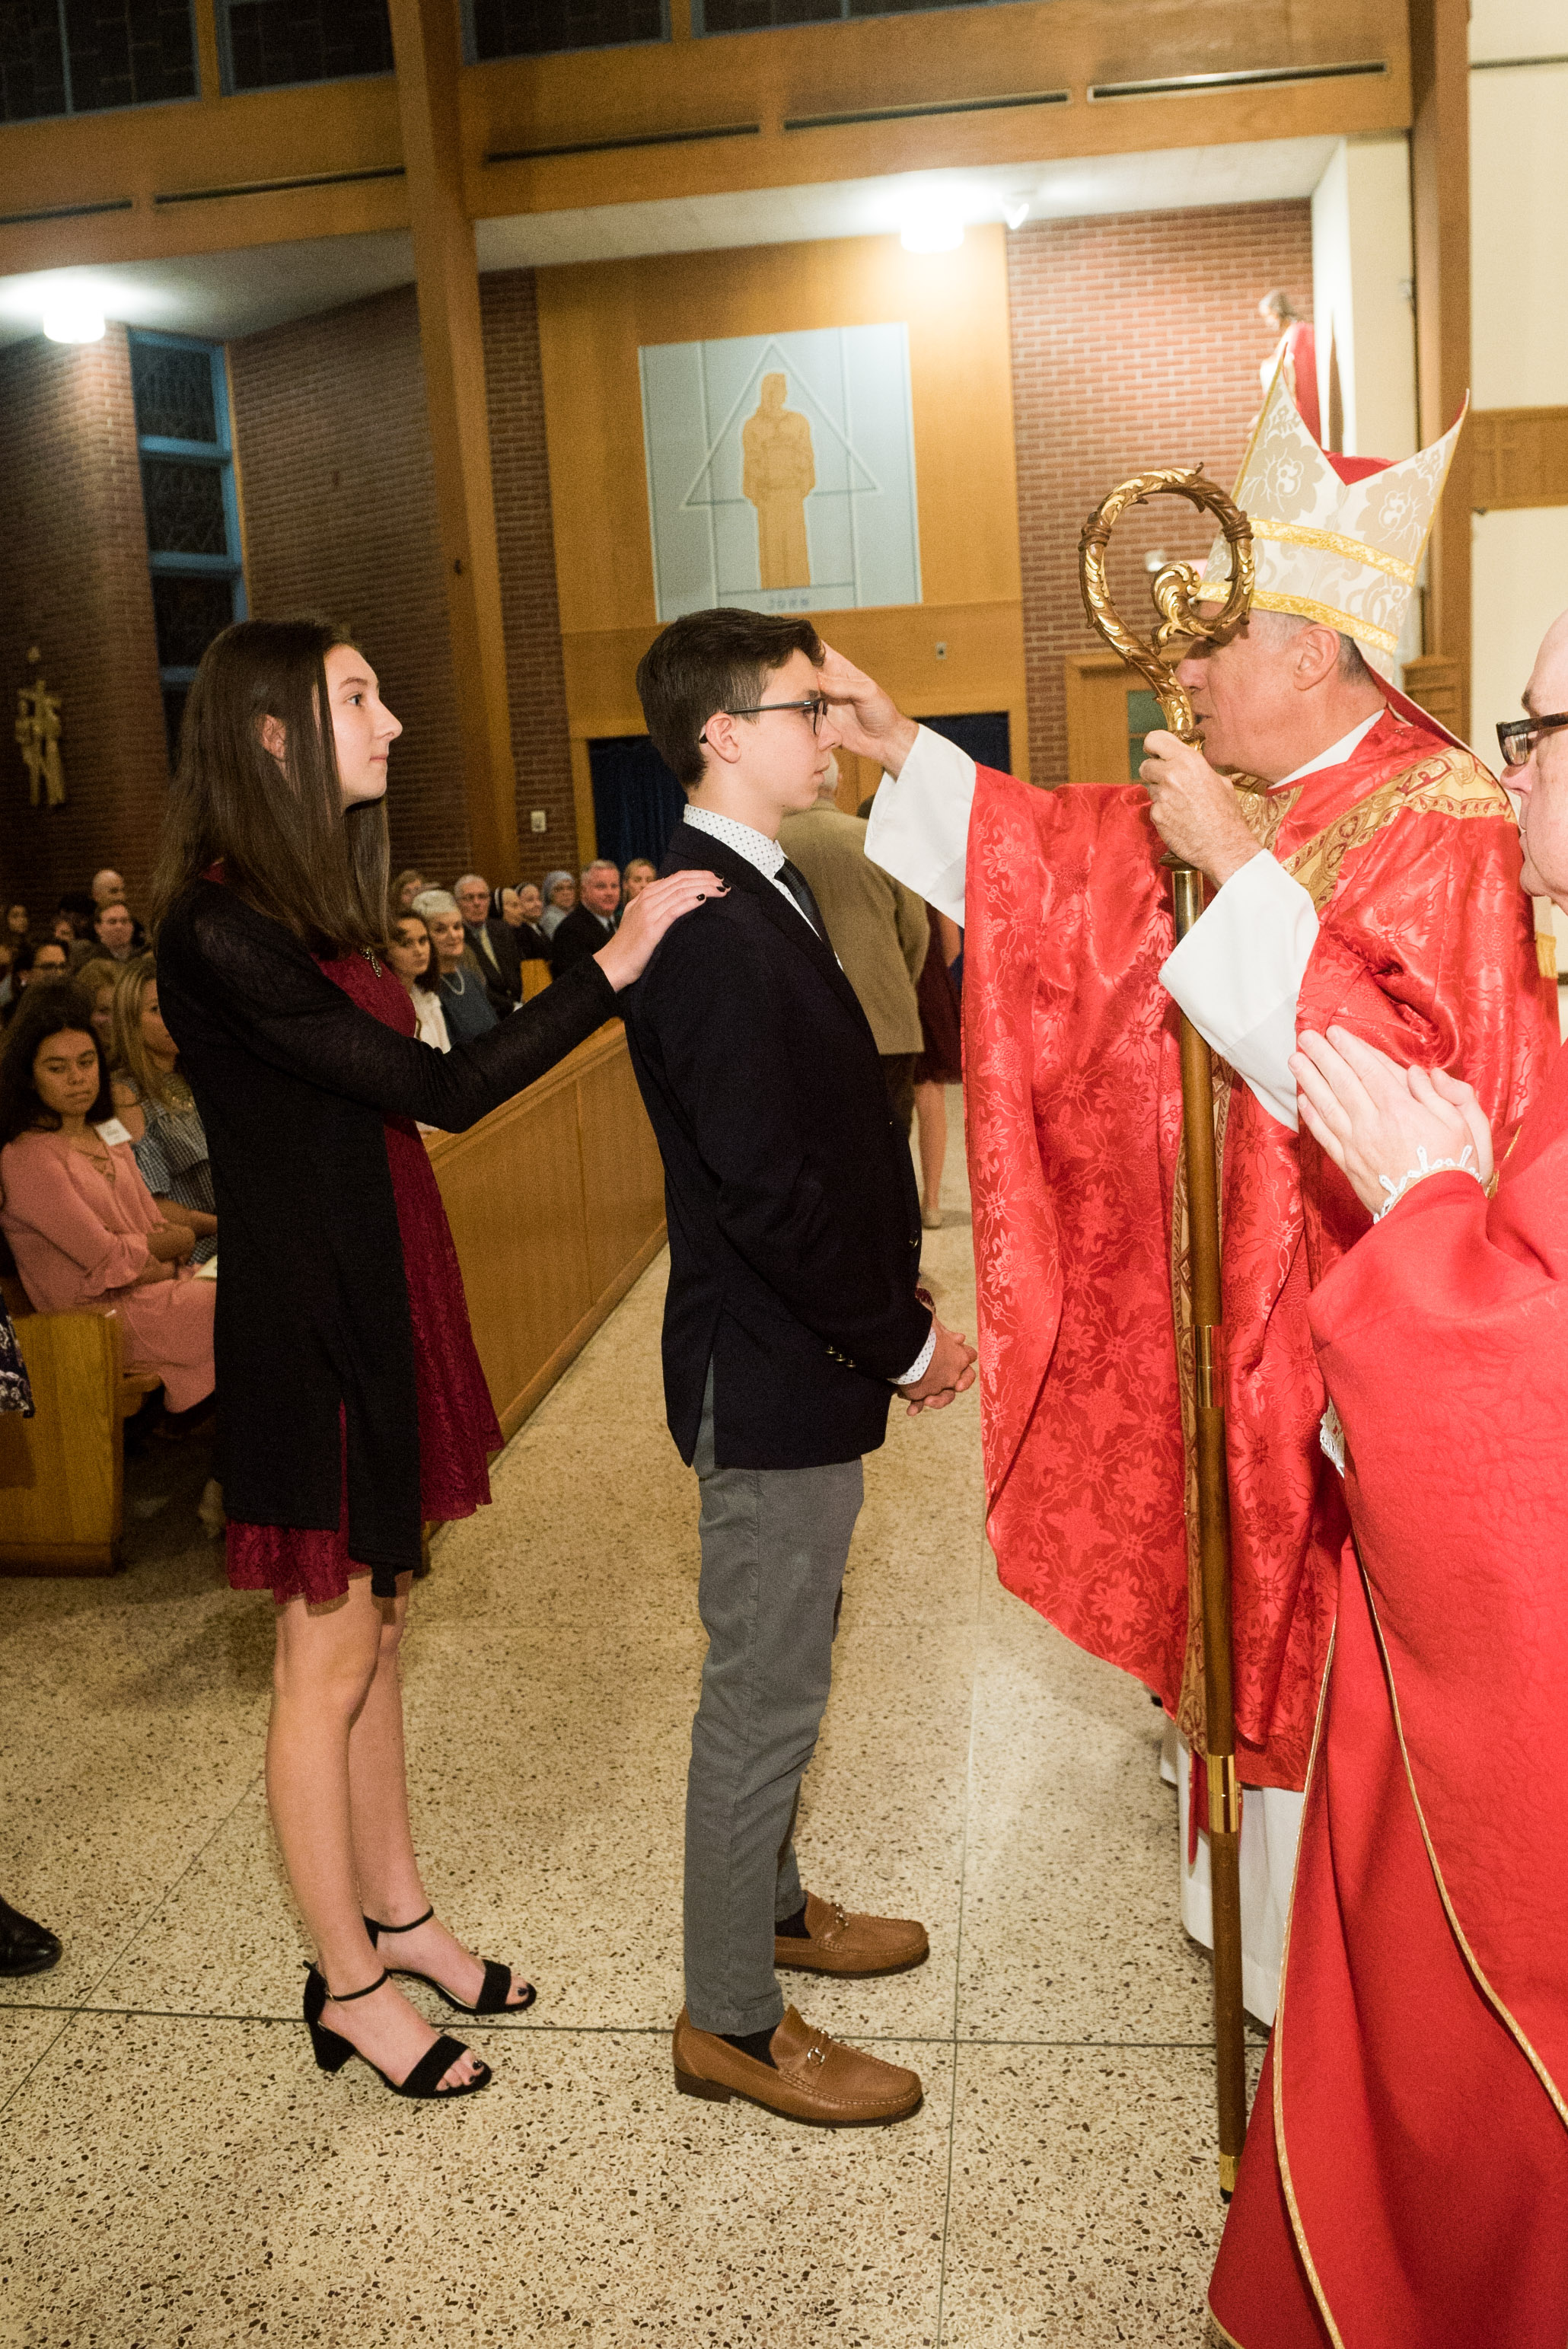 Bishop Checchio anointing Spencer THOMAS MORE Wood with the Sacred Chrism Oil at Sunday's Confirmation Mass.